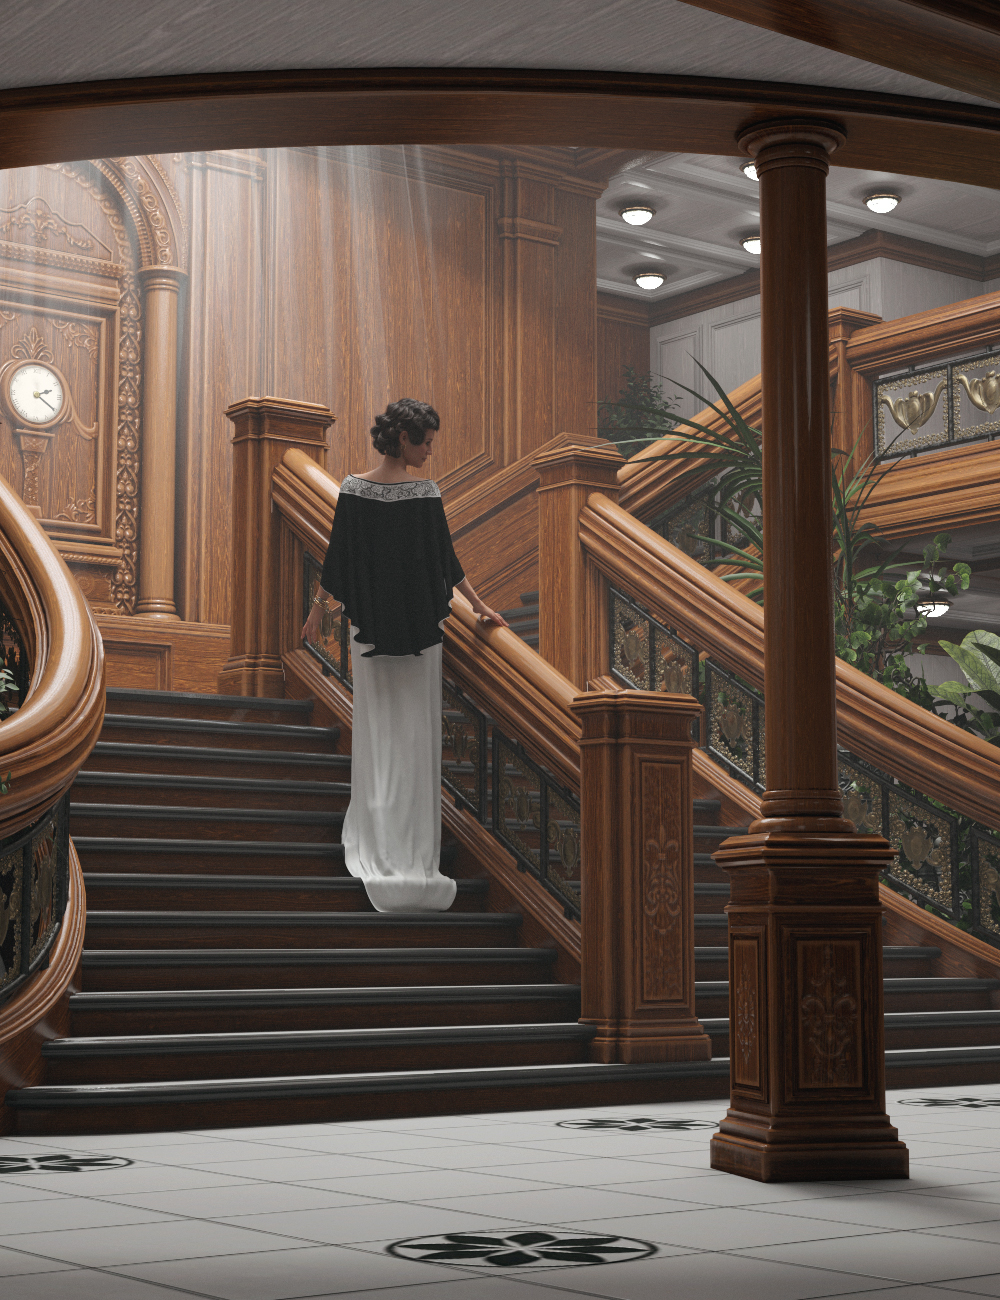 Grand Staircase 2020 by: GolaM, 3D Models by Daz 3D